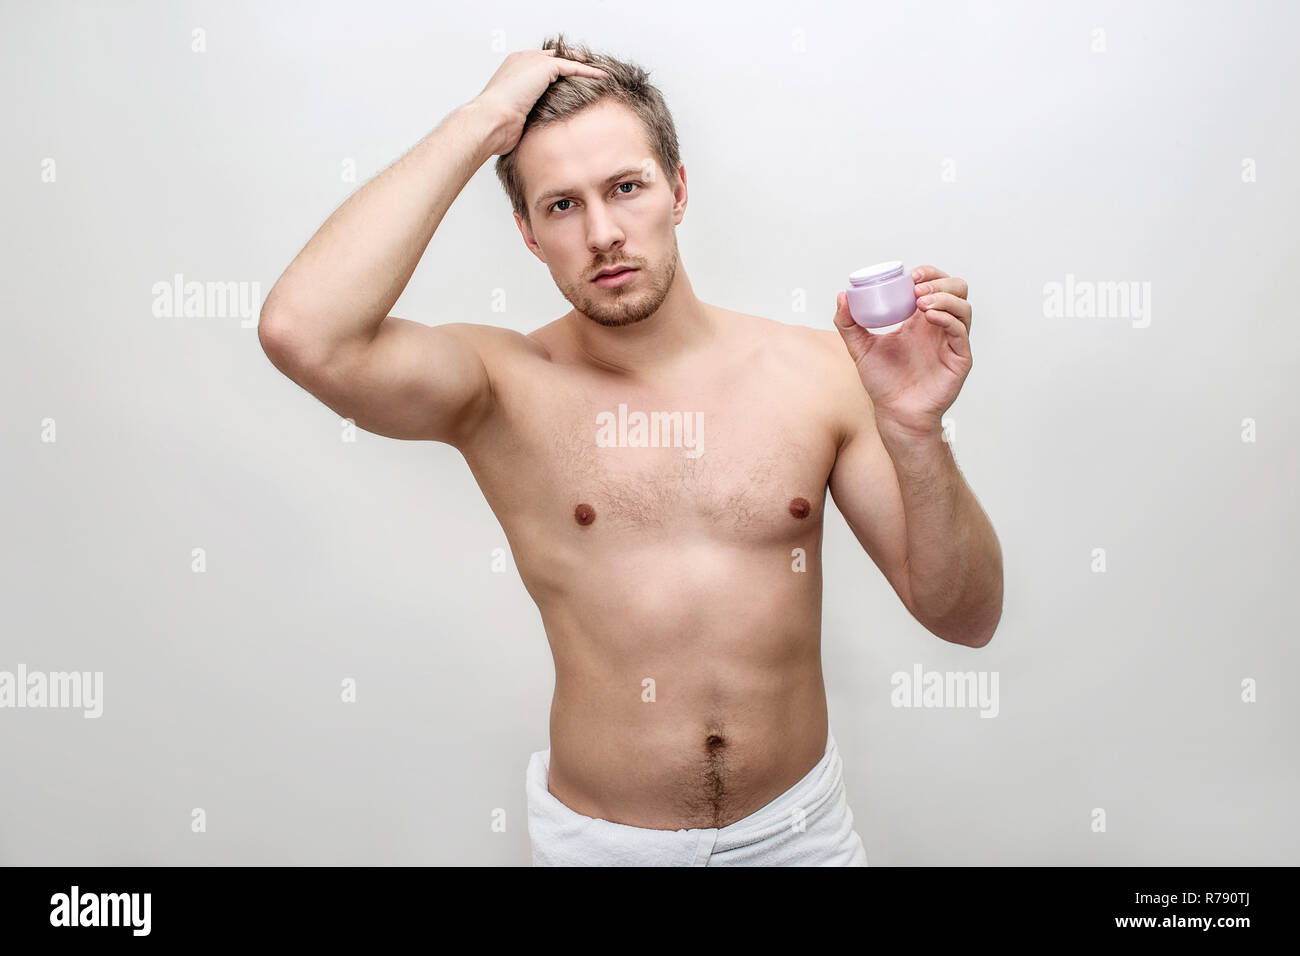 Young male model hold one hand on hair. He poses on camera. Face cream is in another hand. Isolated on white background. - Stock Image